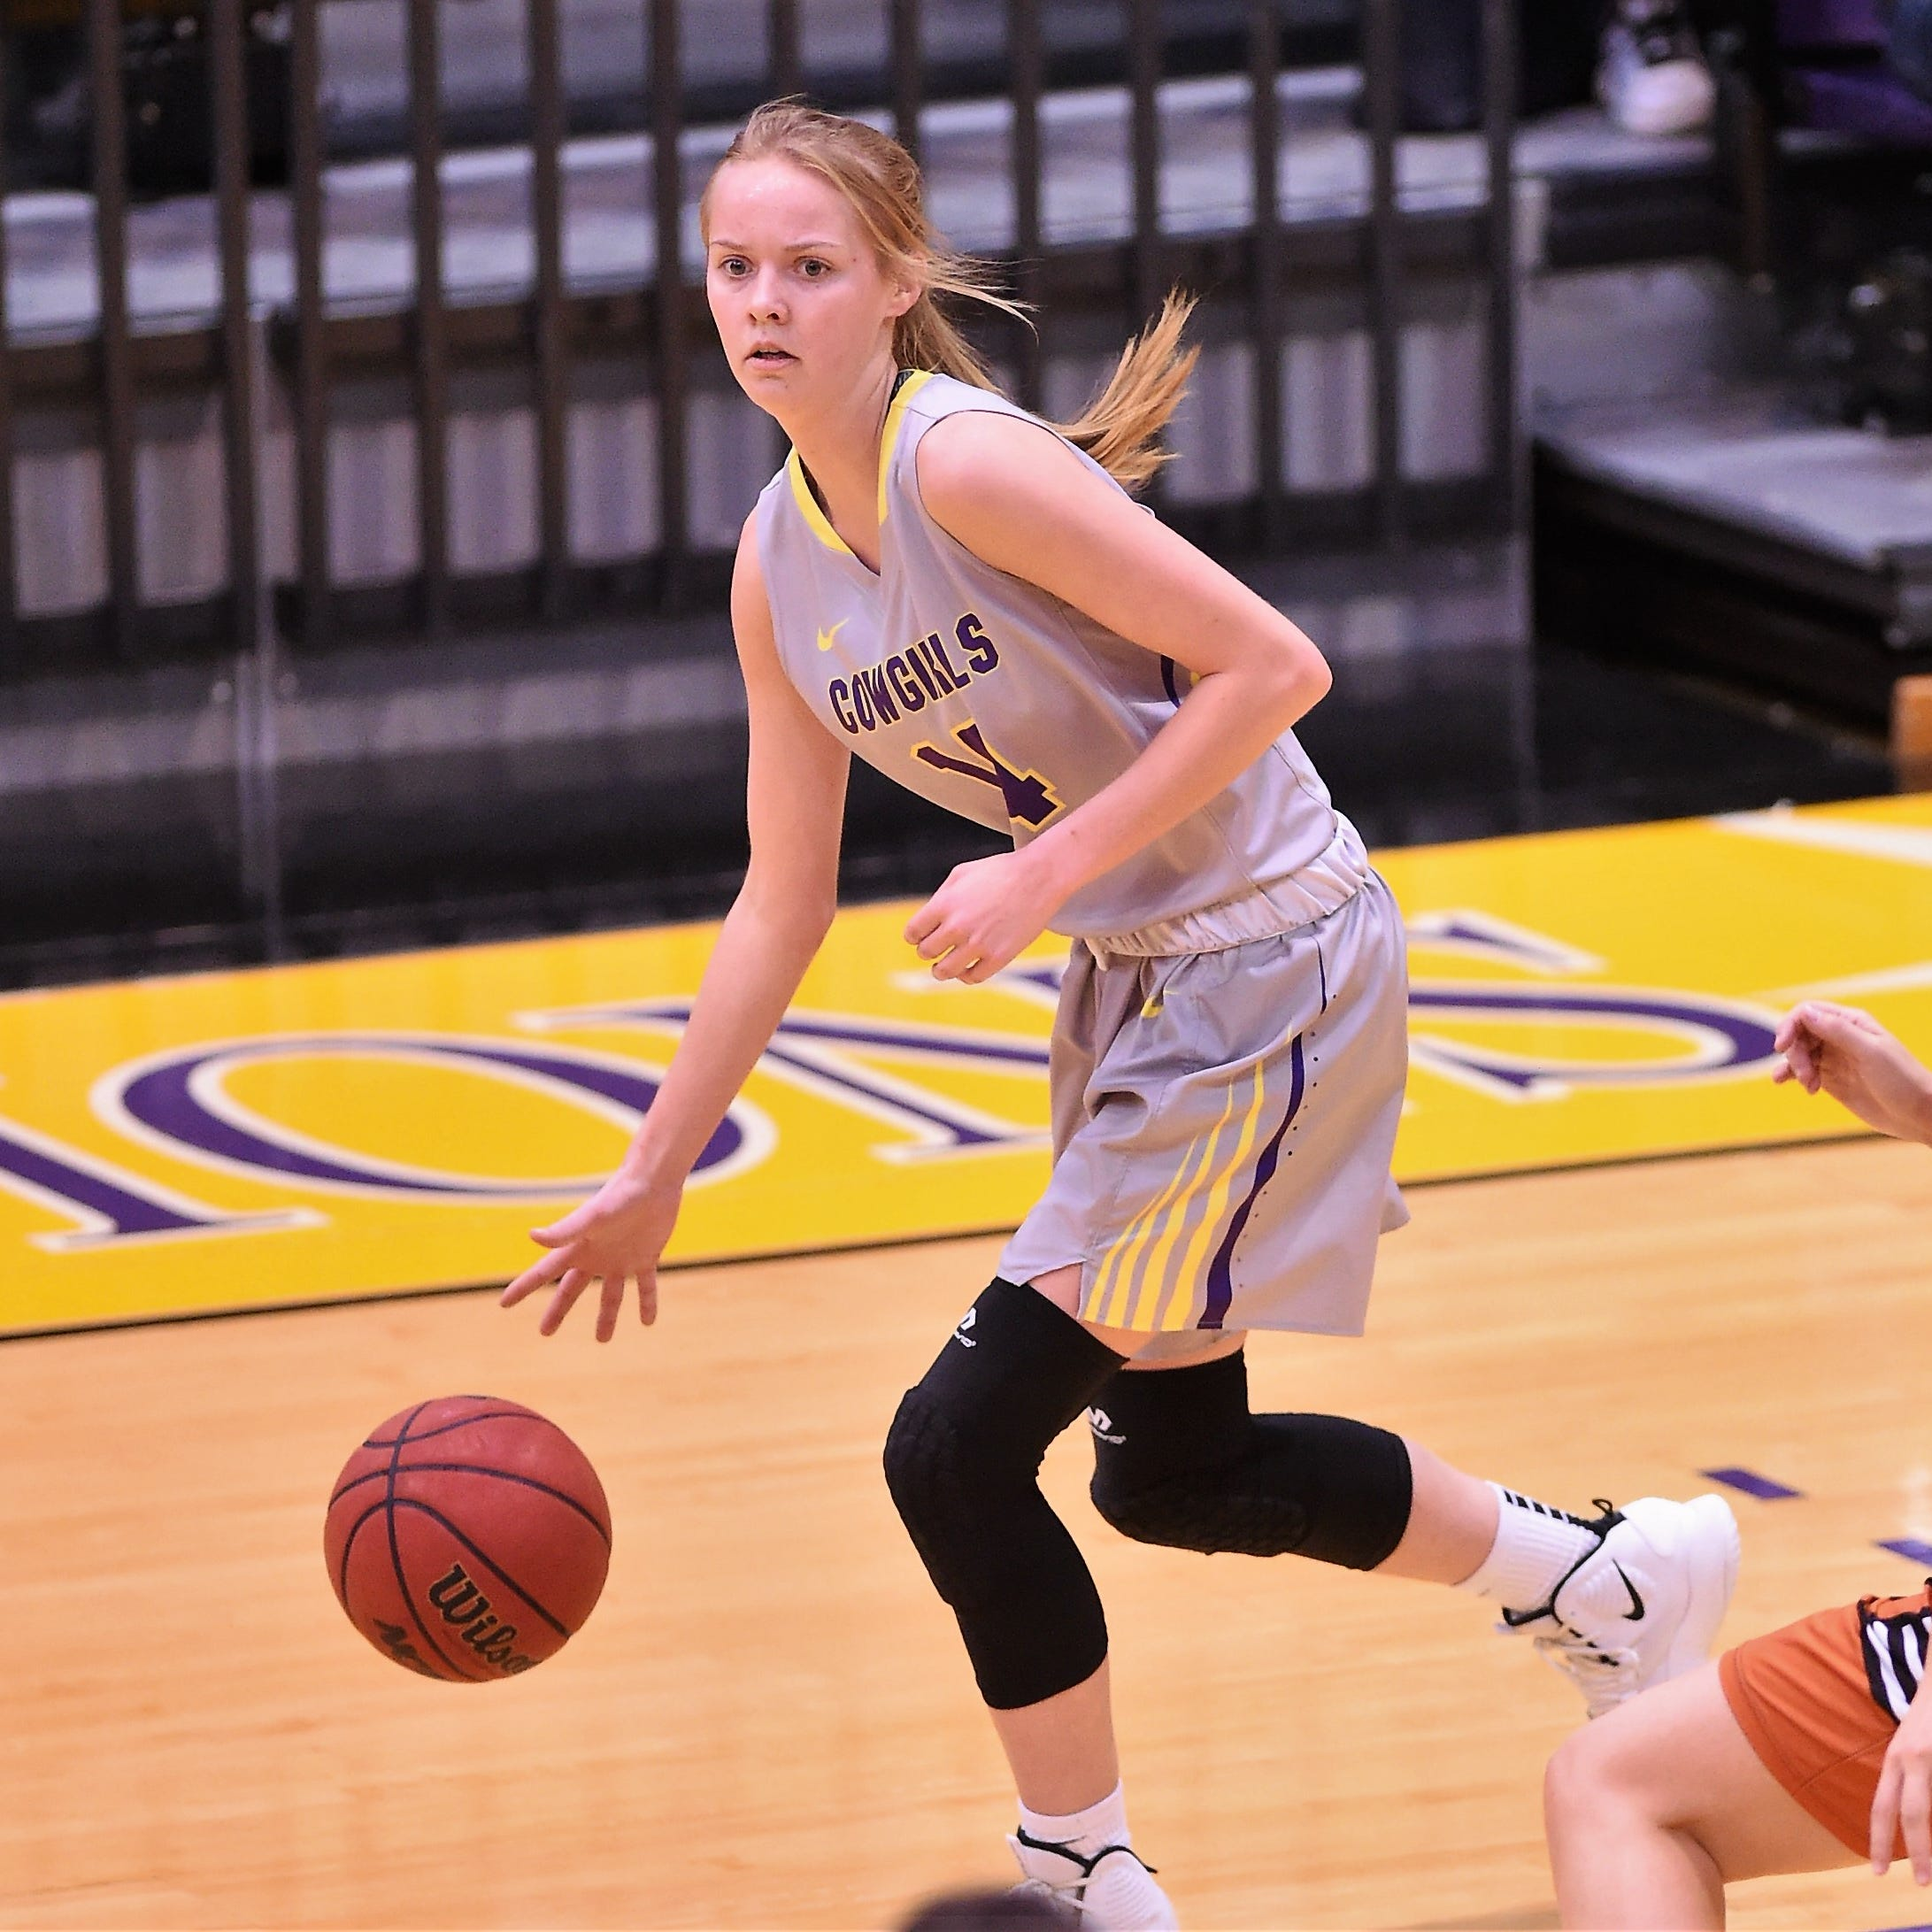 Ritchie's return a boost for Hardin-Simmons women's basketball